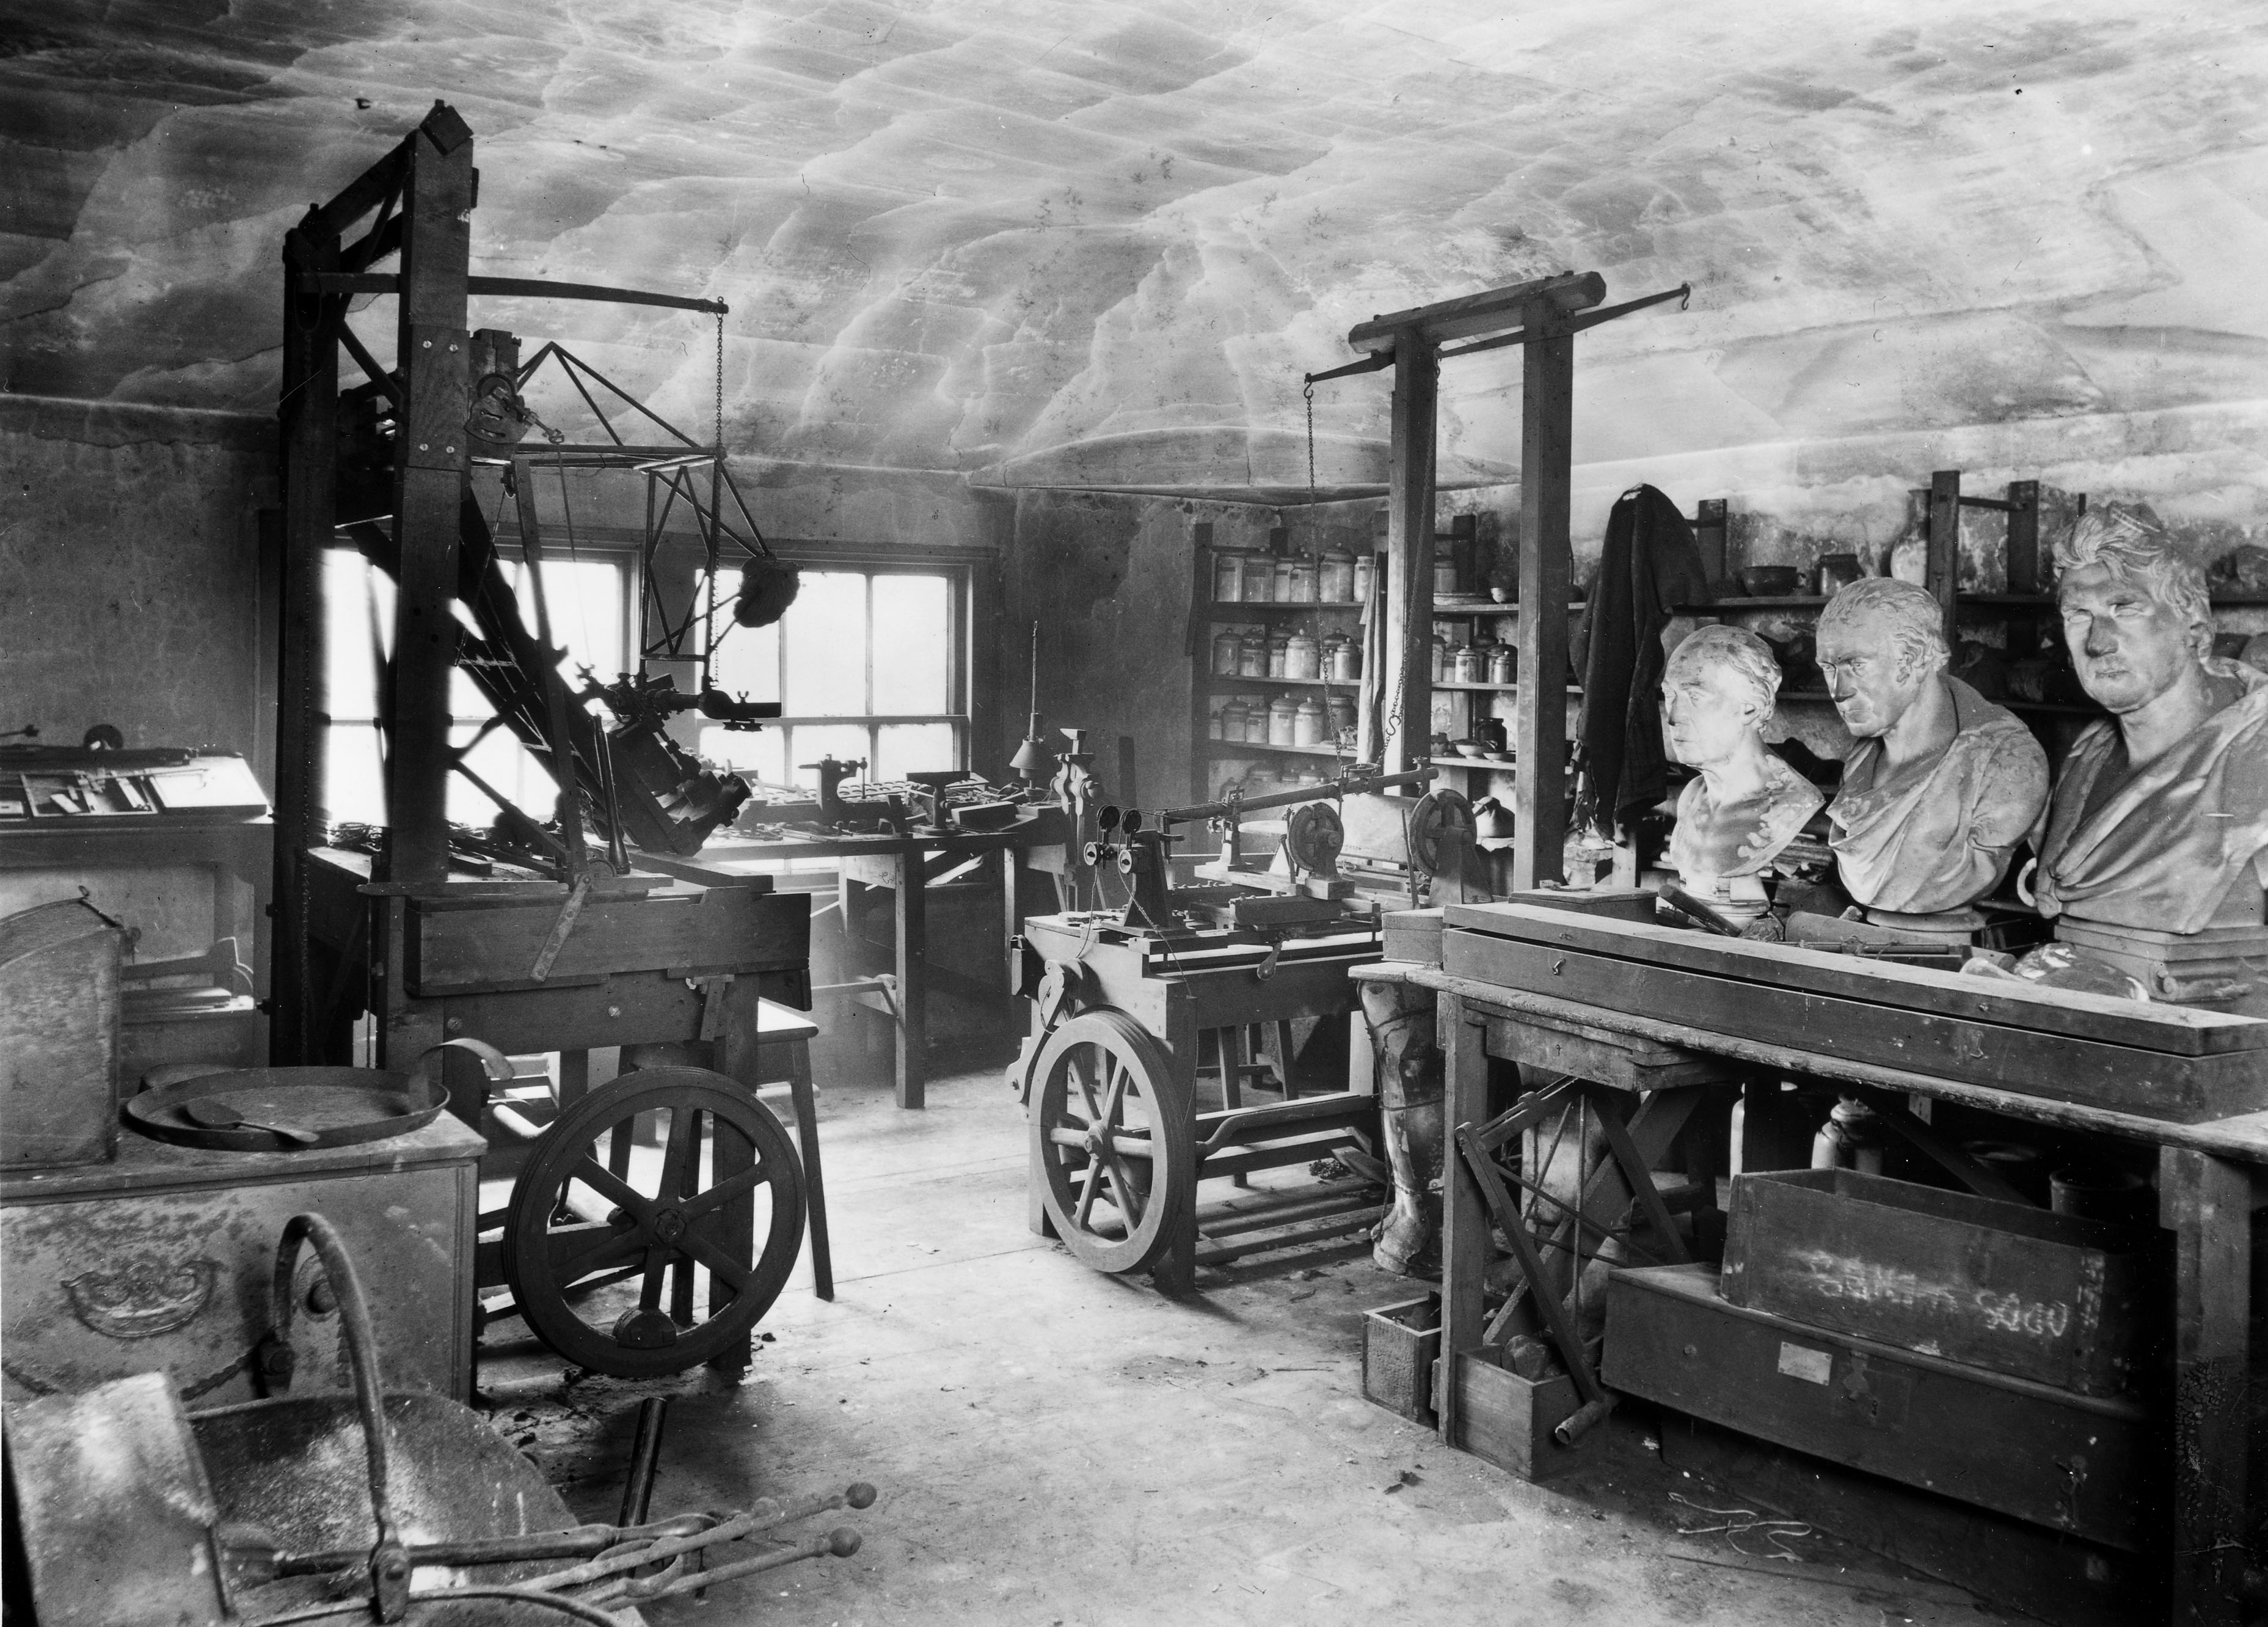 Image: The workshop of James Watt (1736-1819), December 1924. One of four photographs taken at Heathfield by J Willoughby Harr © Science Museum/Science & Society Picture Library